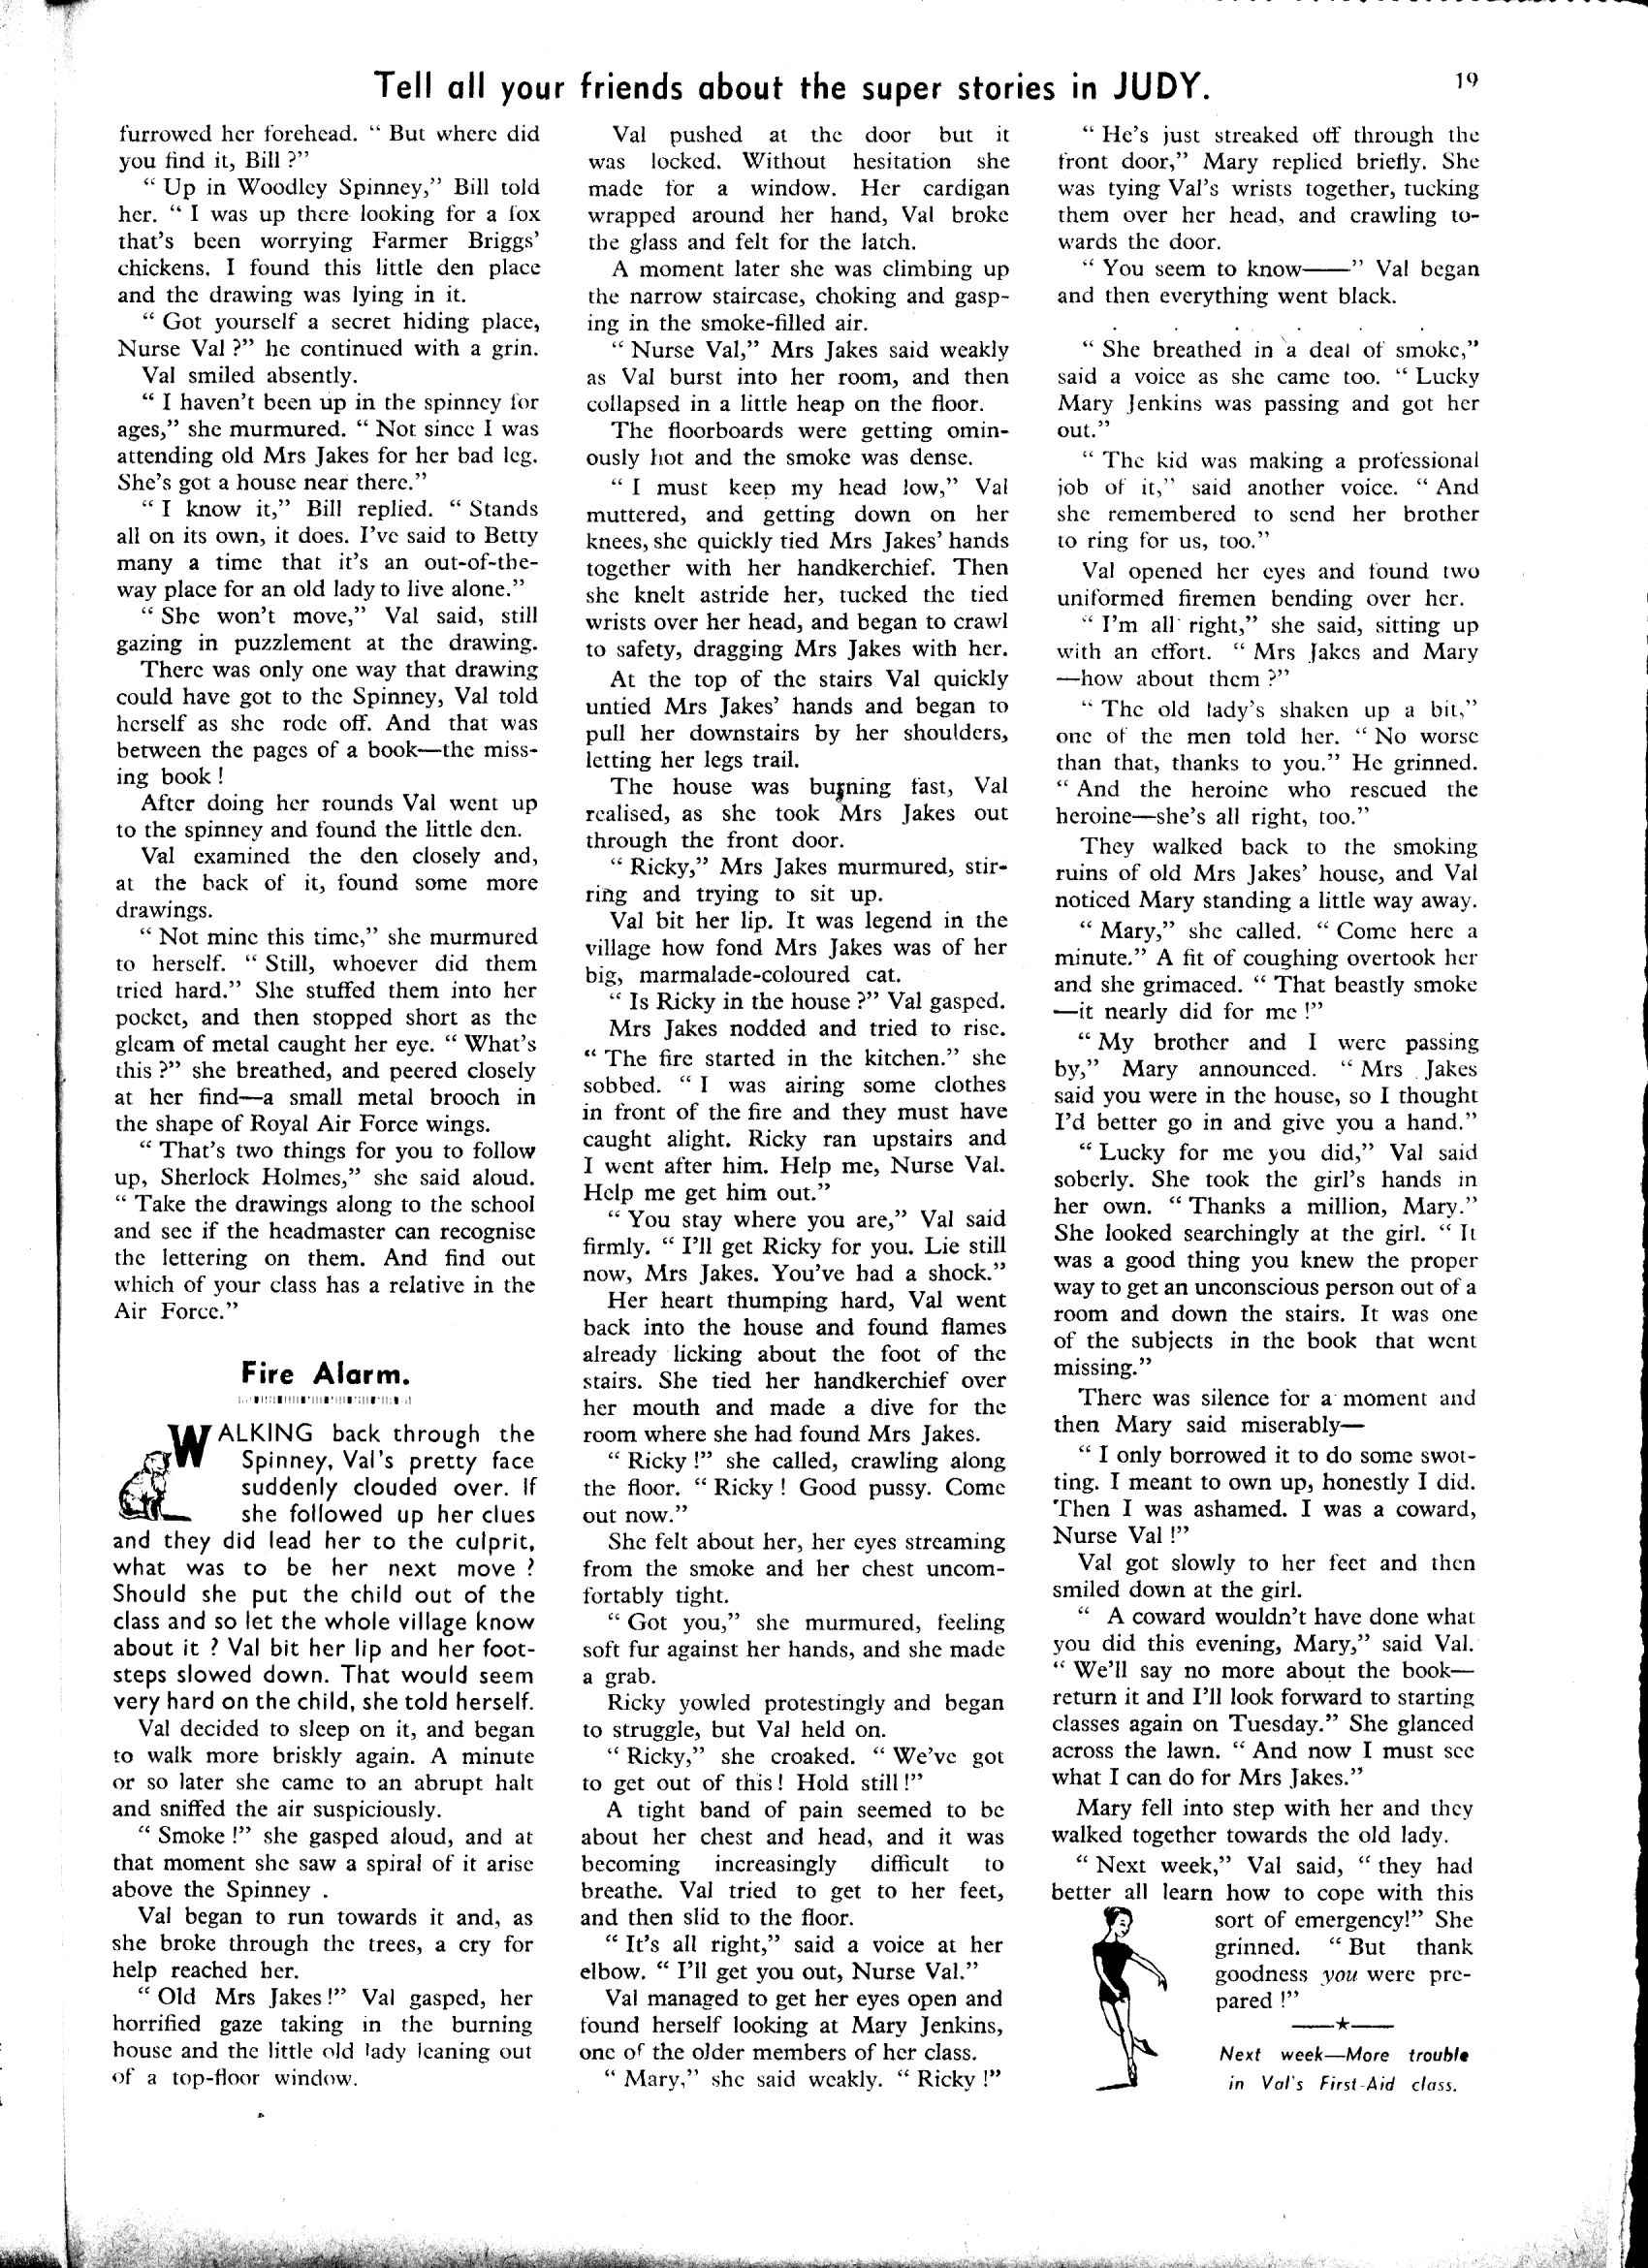 Read online Judy comic -  Issue #47 - 19